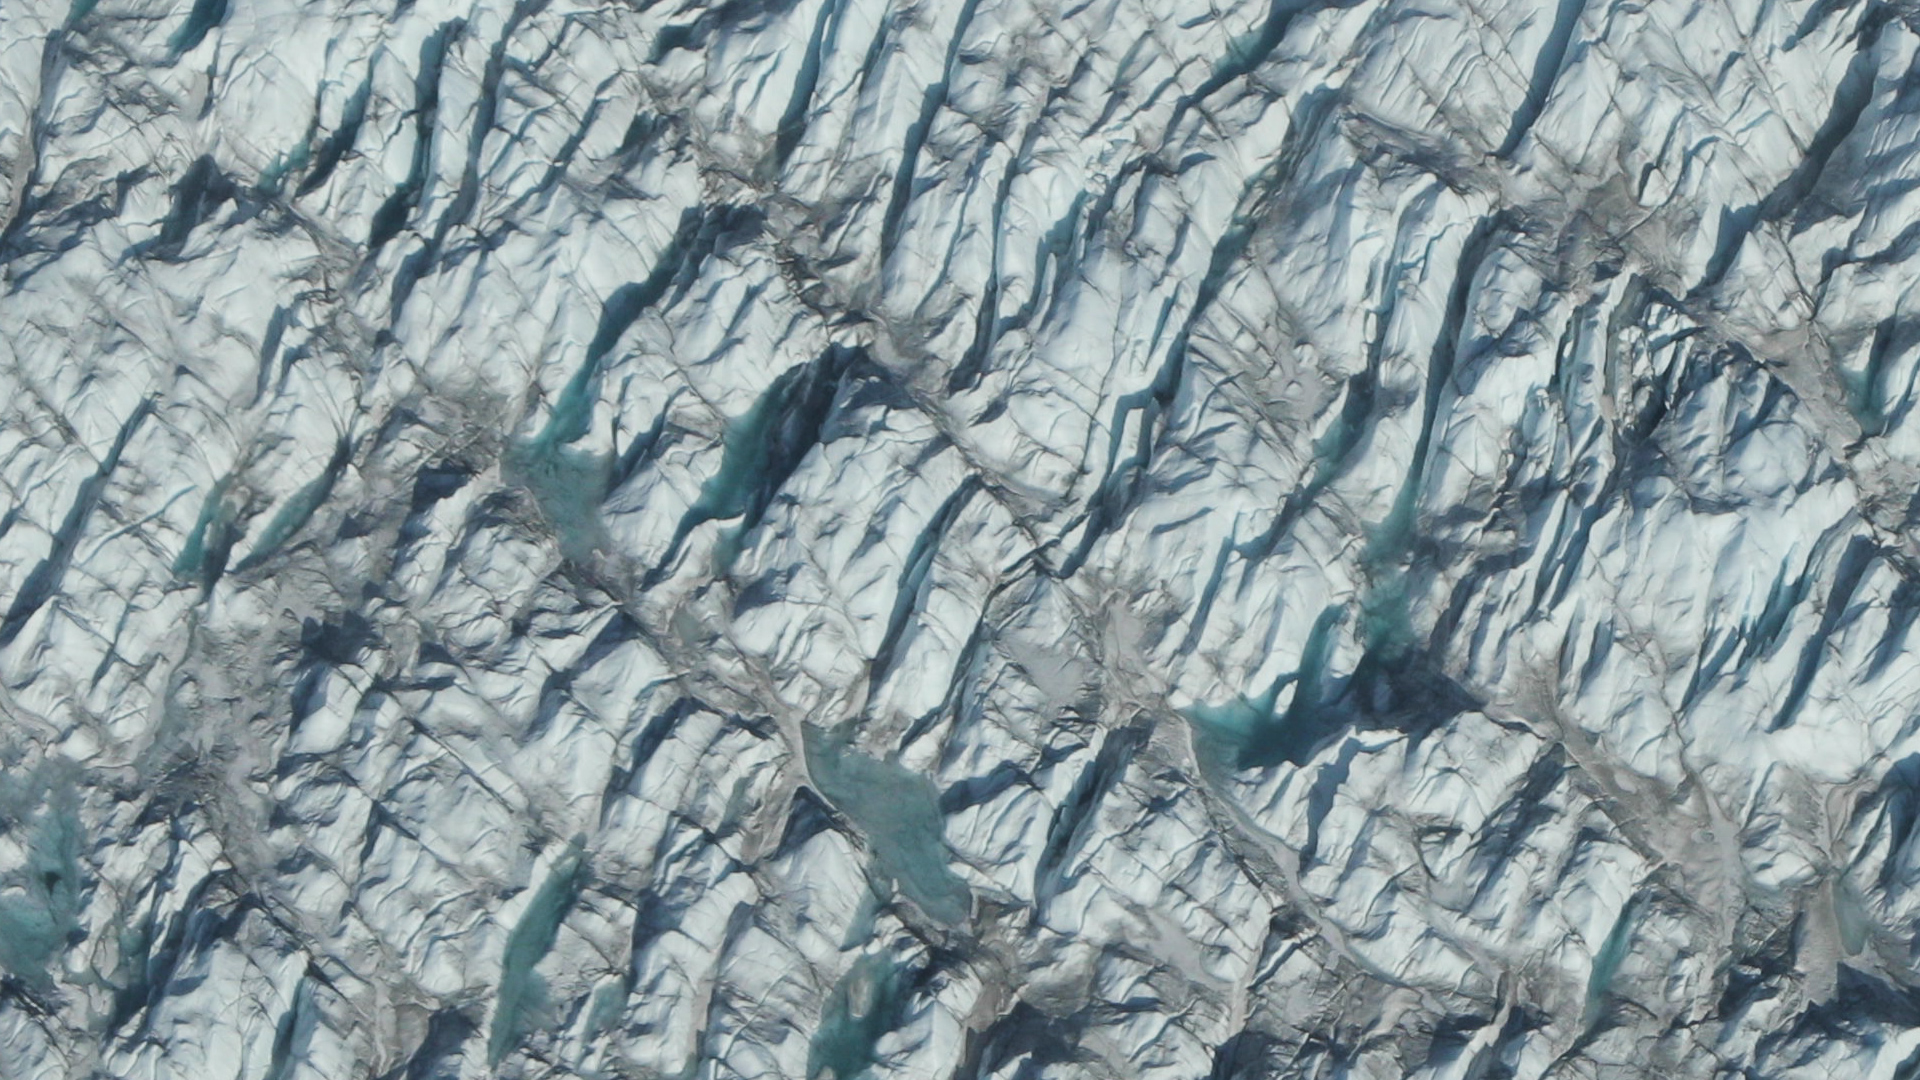 Image: Study Predicts More Long-Term Sea Level Rise from Greenland Ice